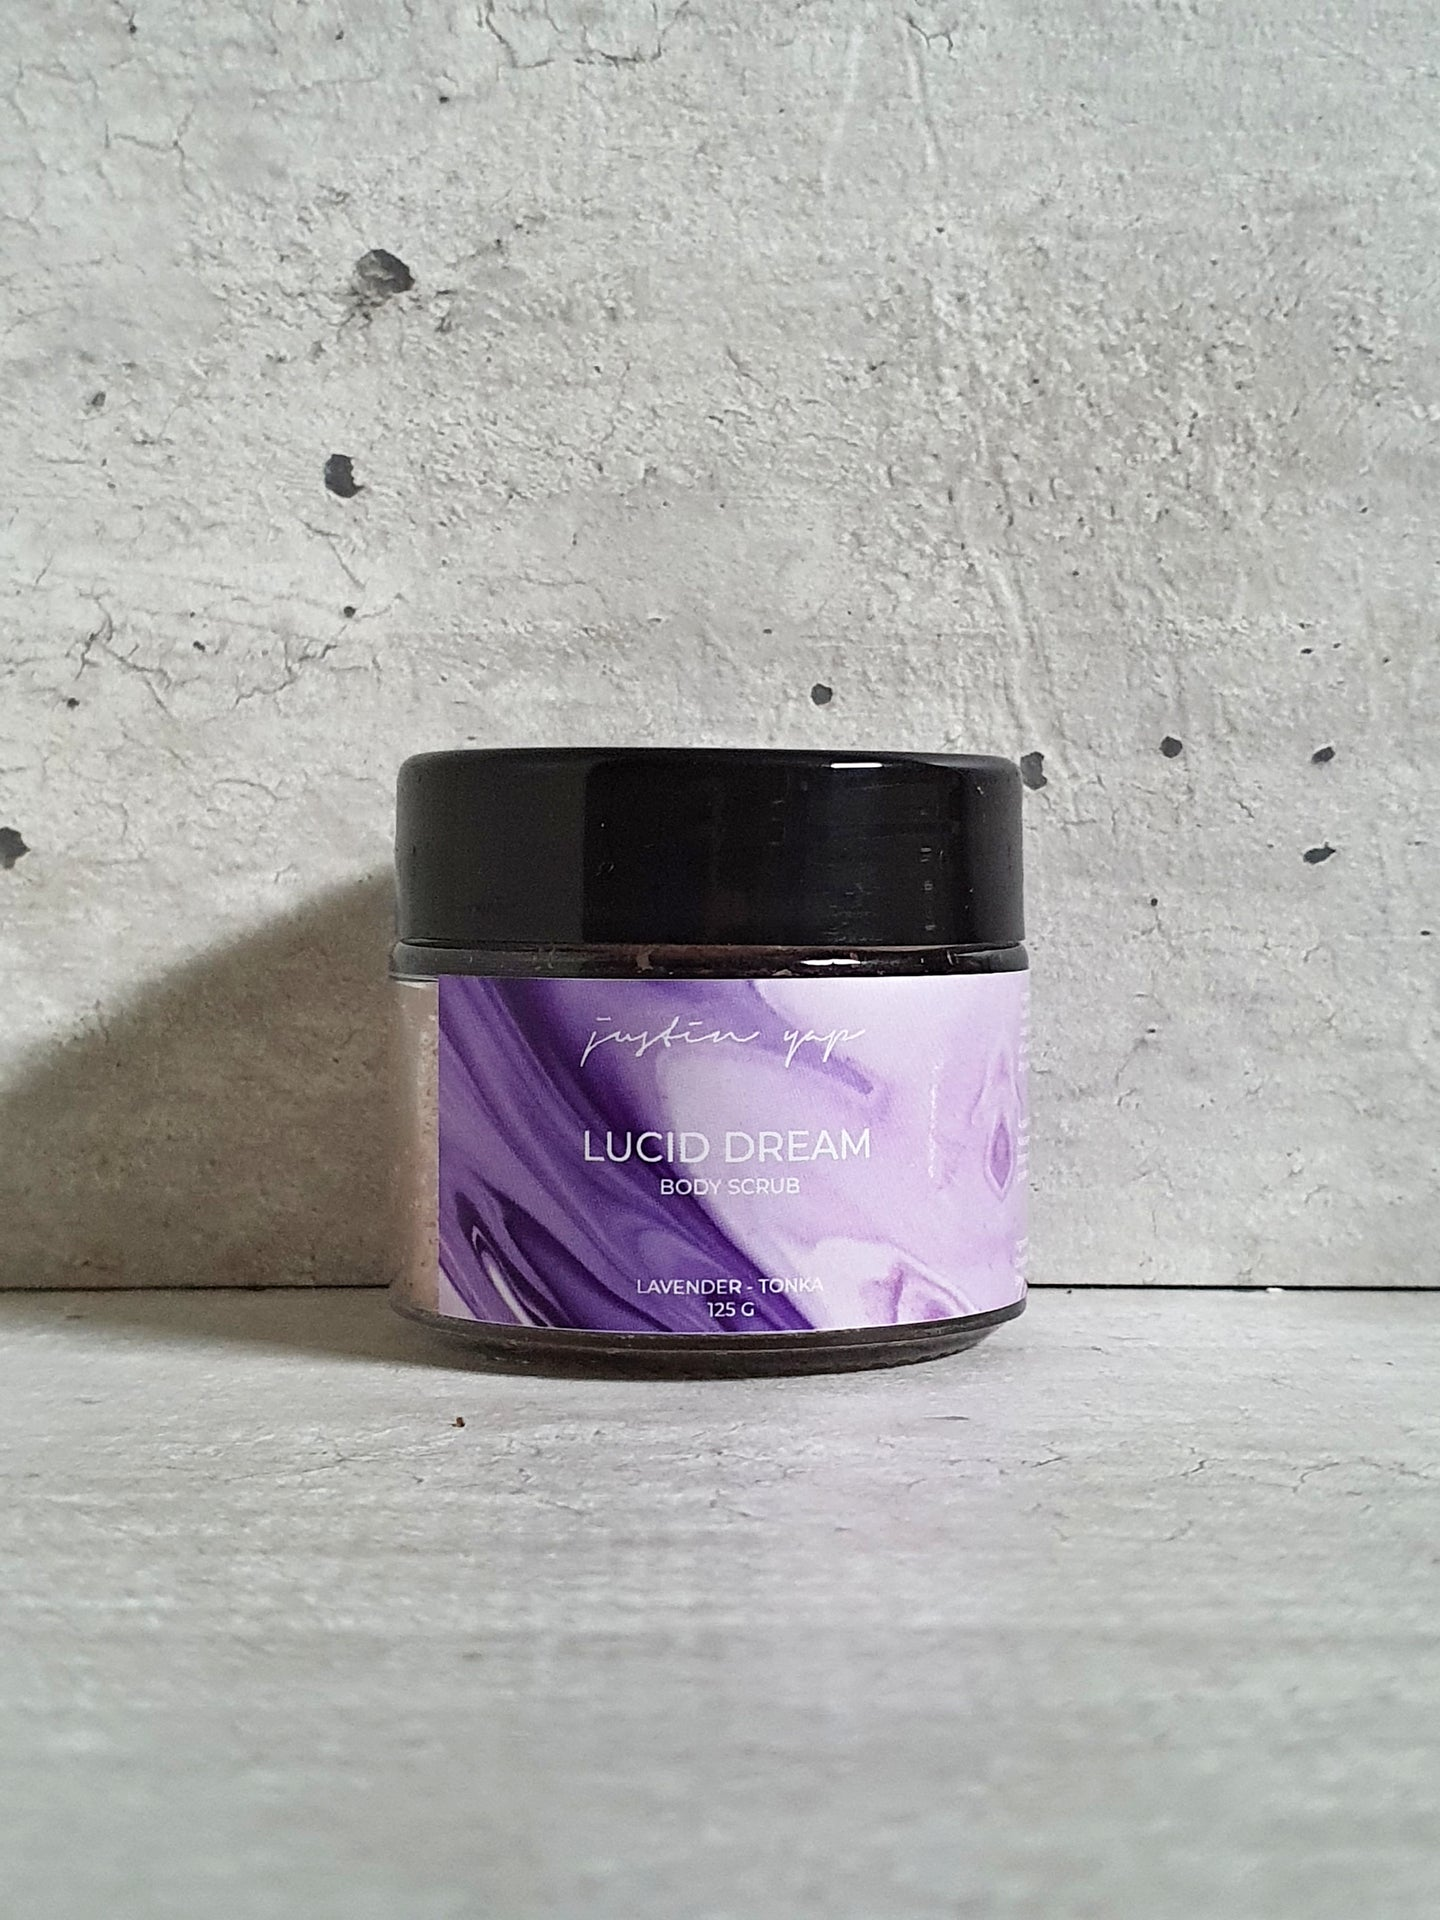 Lucid Dream Body Scrub - Lavender / Tonka